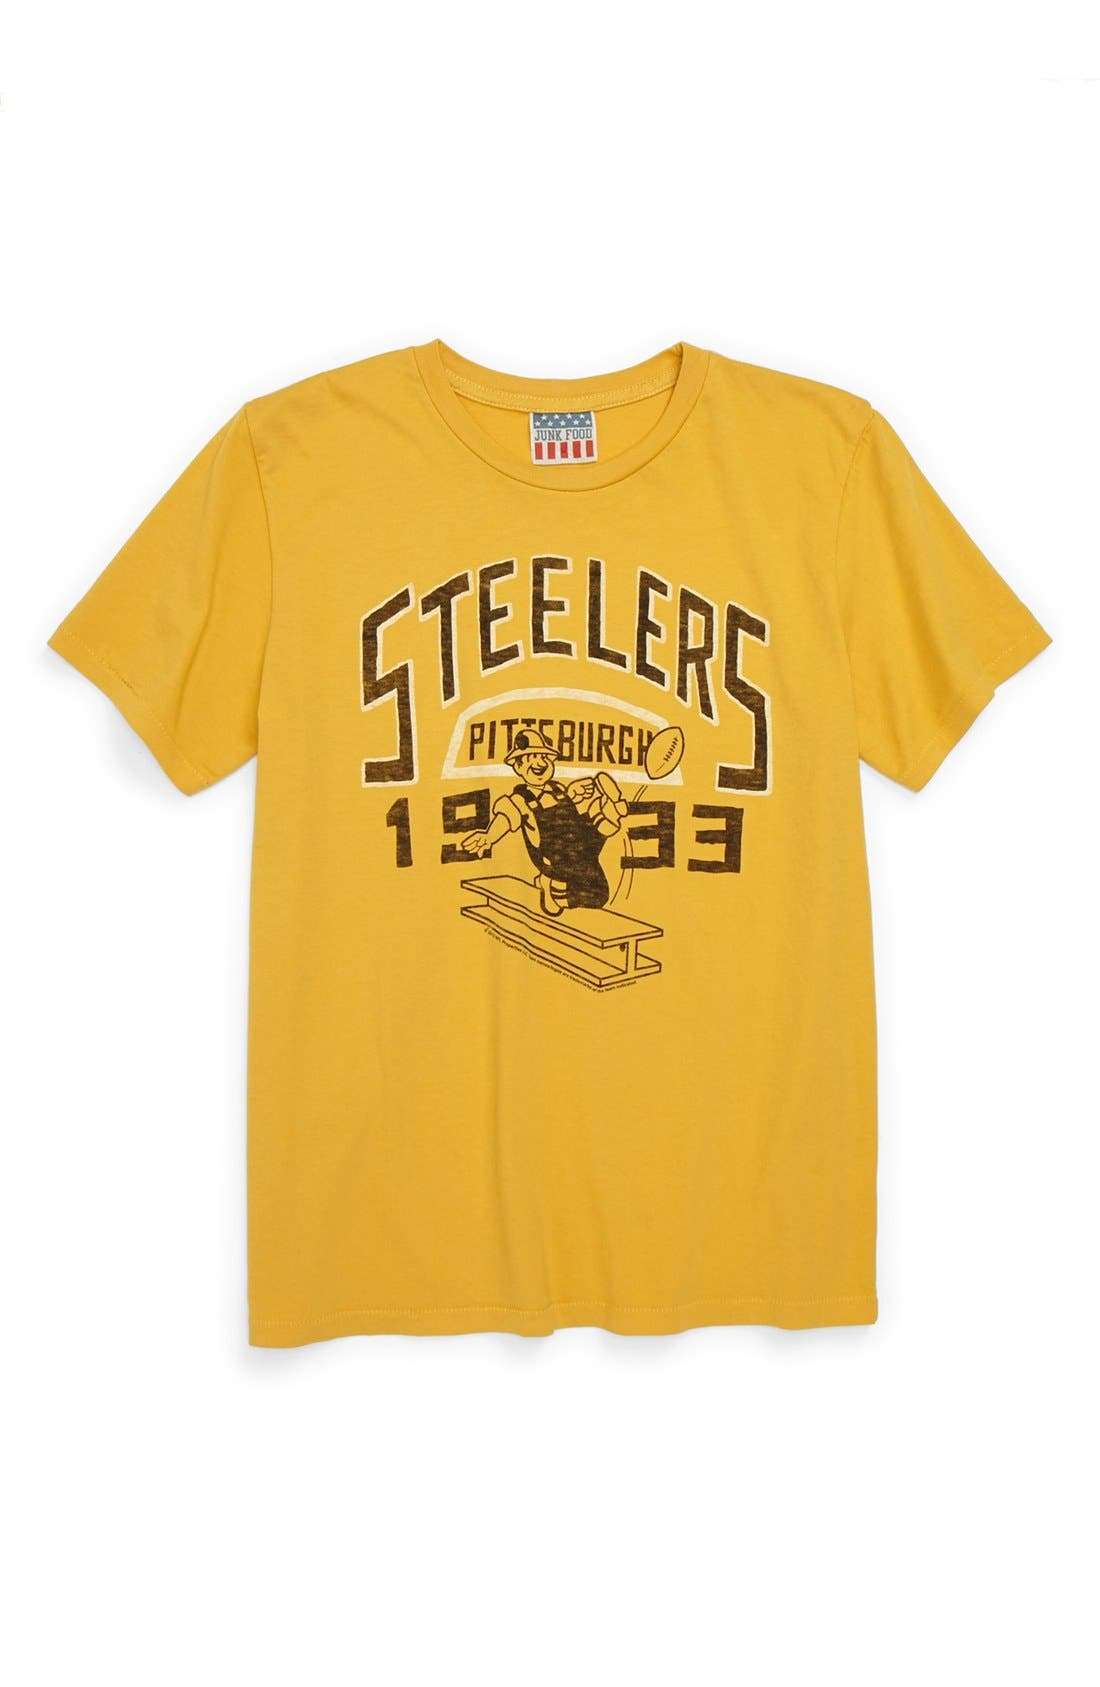 Alternate Image 1 Selected - Junk Food 'Pittsburgh Steelers' T-Shirt (Little Boys & Big Boys)